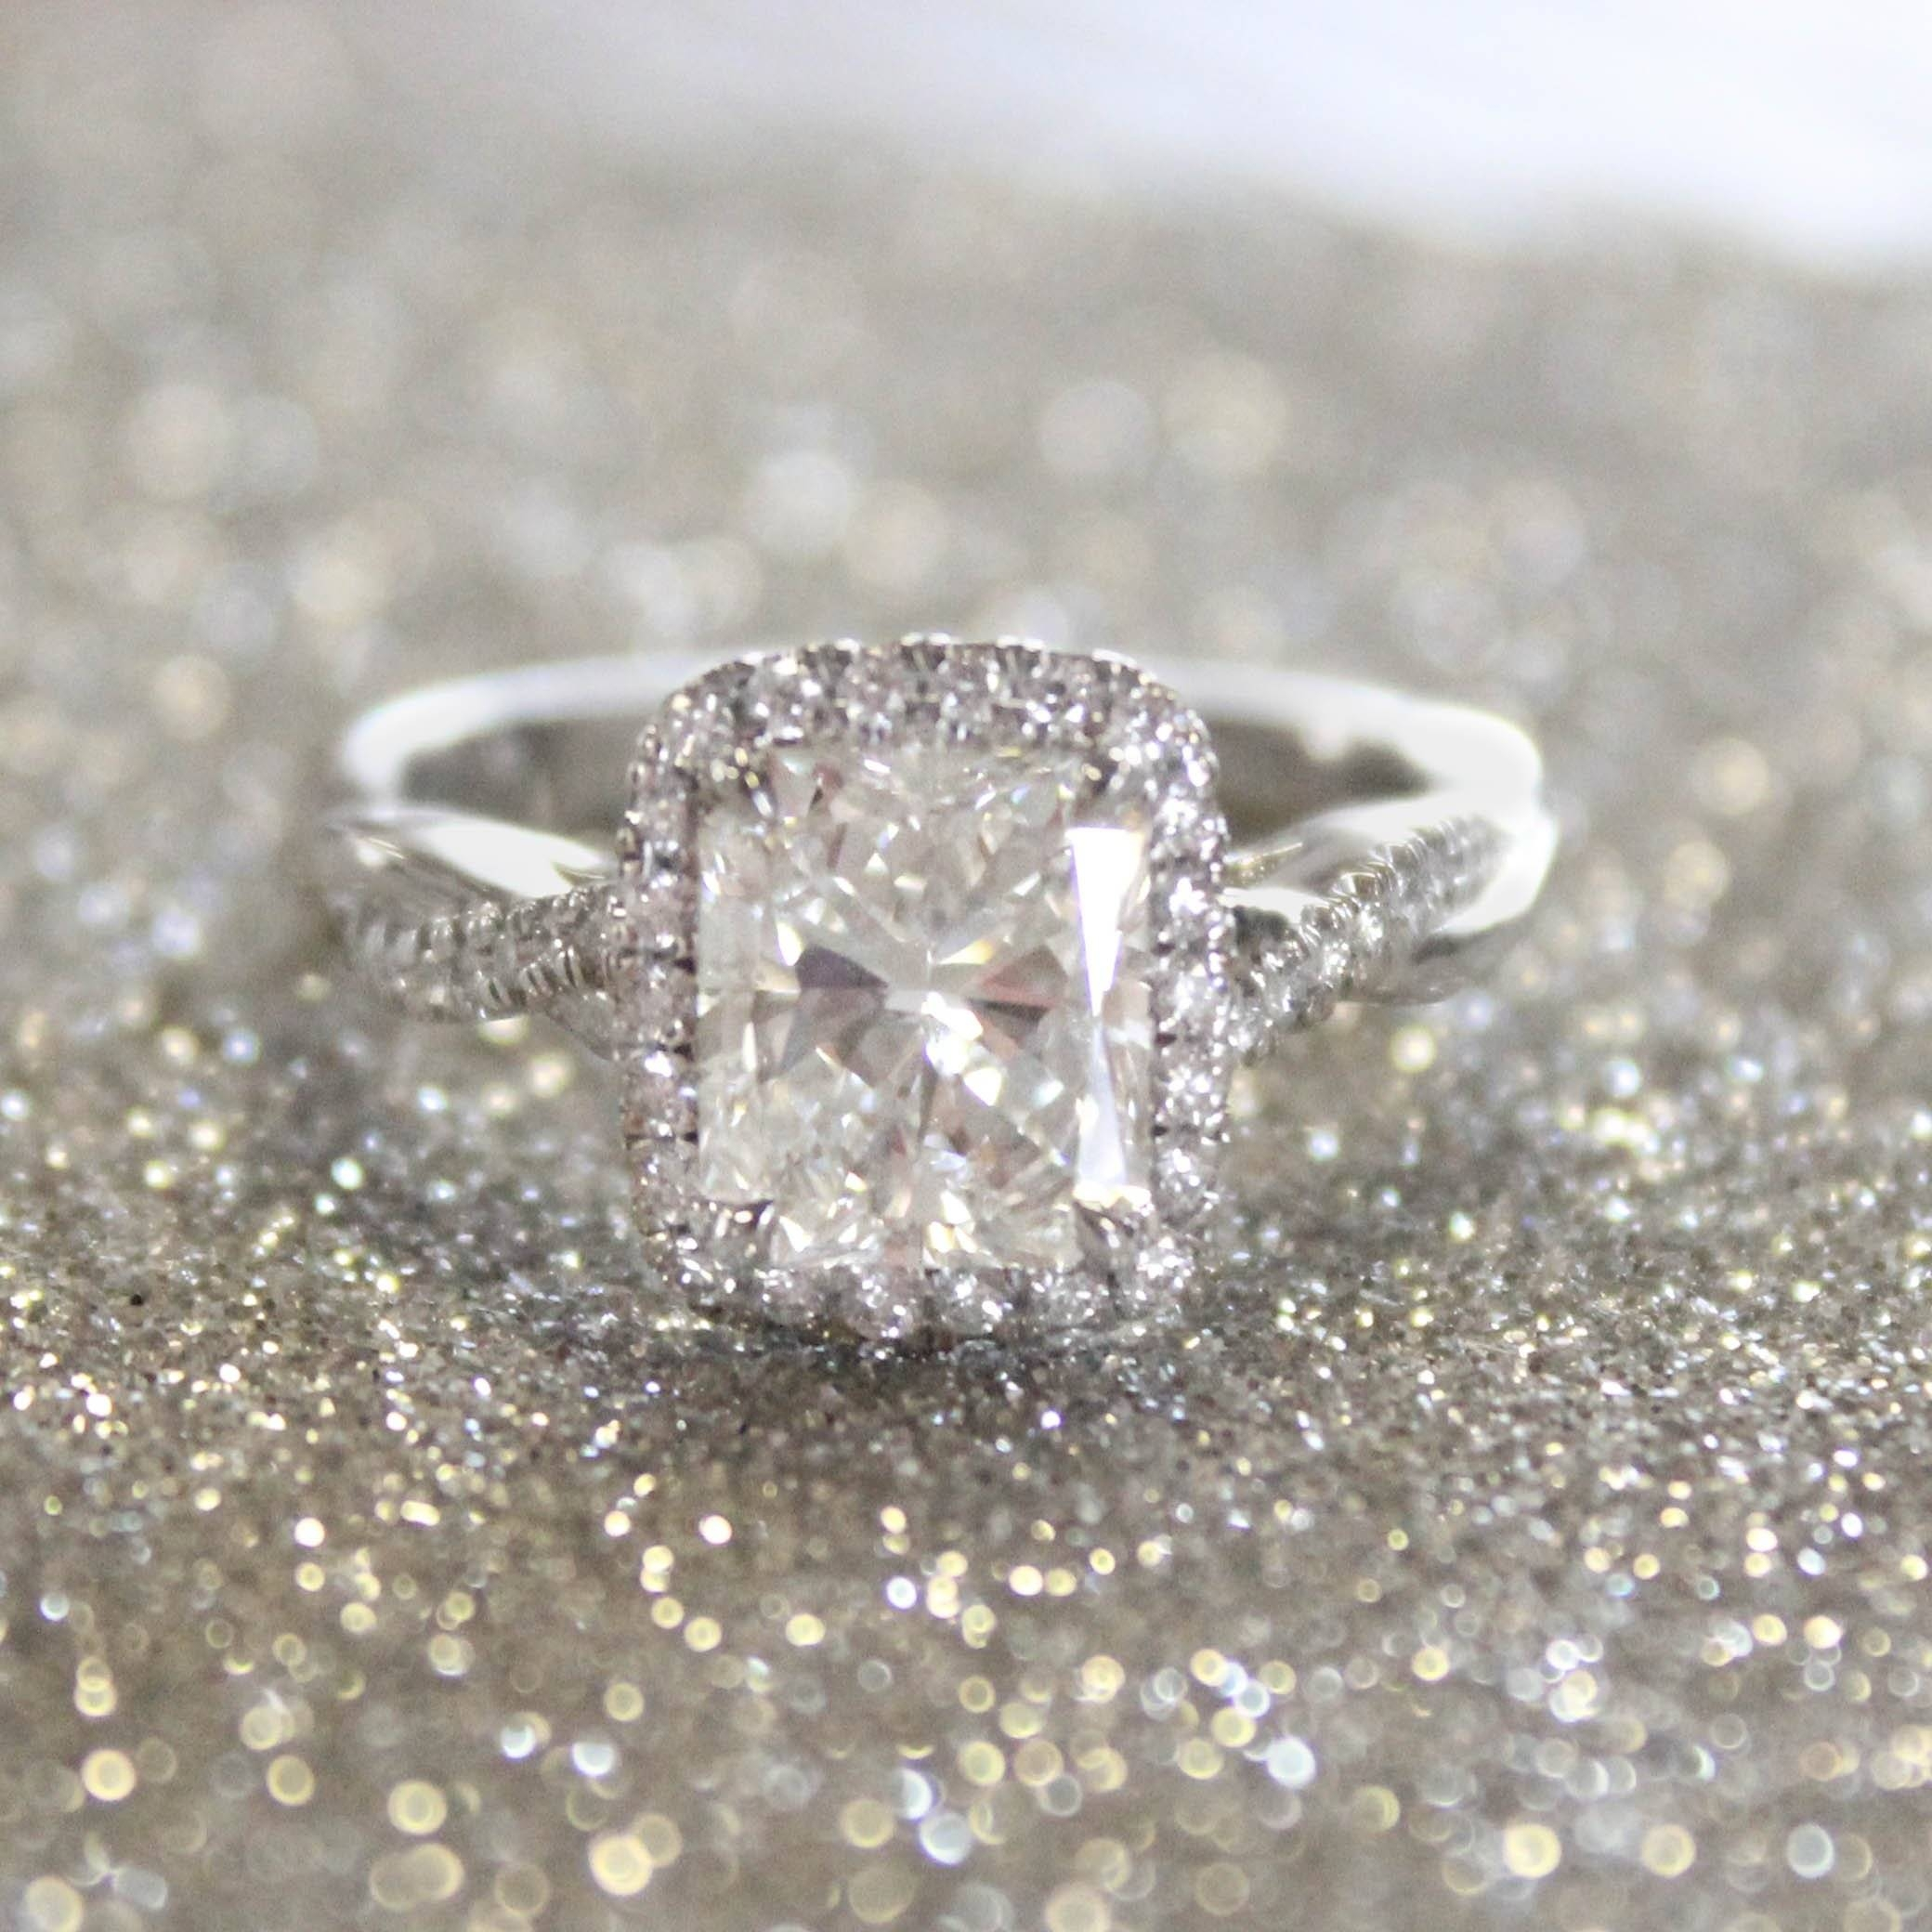 The 8 Most Beautiful Radiant Cut Engagement Rings – Brilliant Throughout Radiant Cut Engagement Ring Settings (View 13 of 15)